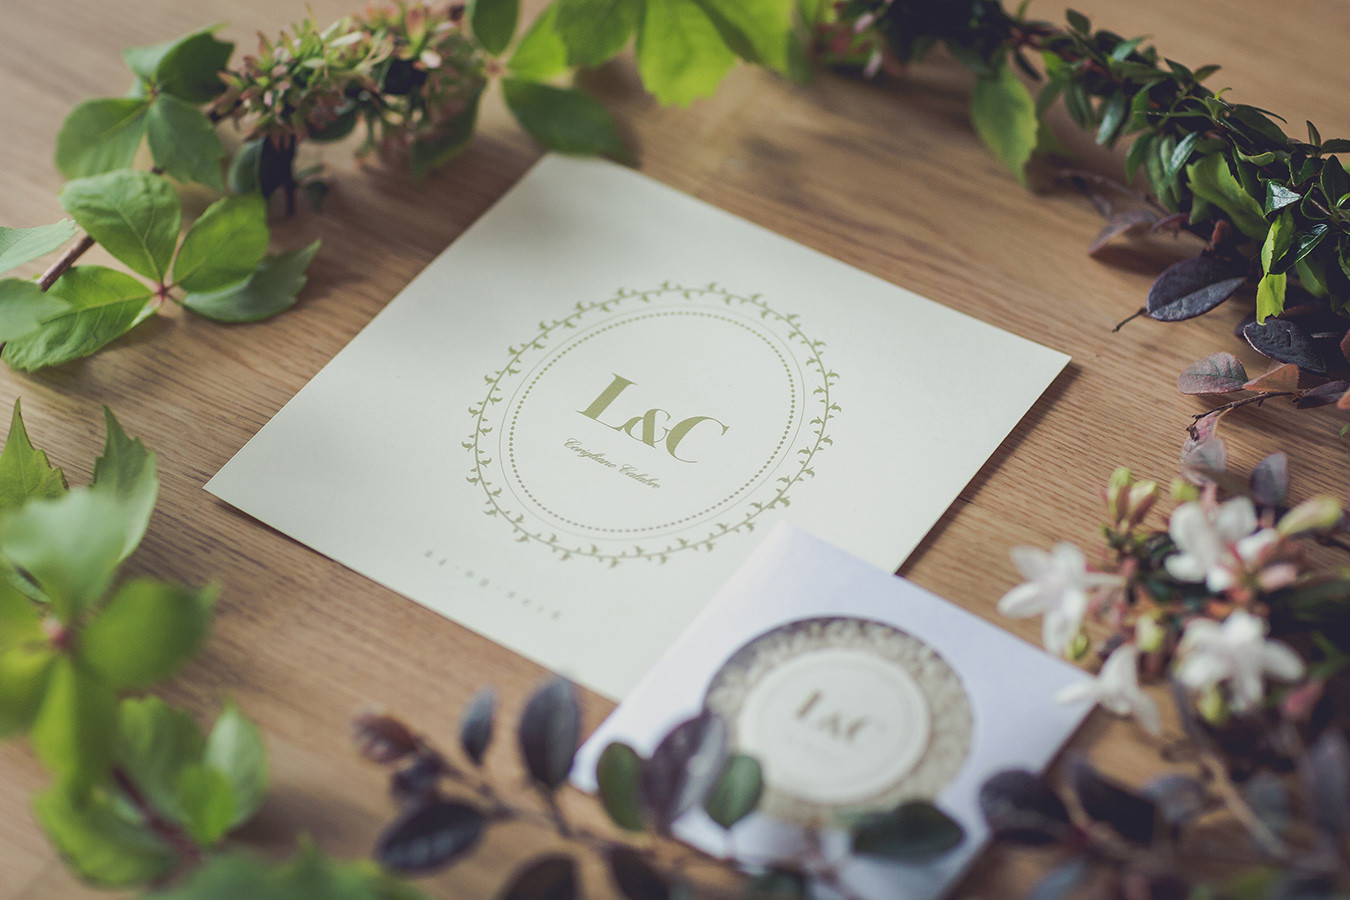 wedsign - wedding design & photography - @wedsignwedding